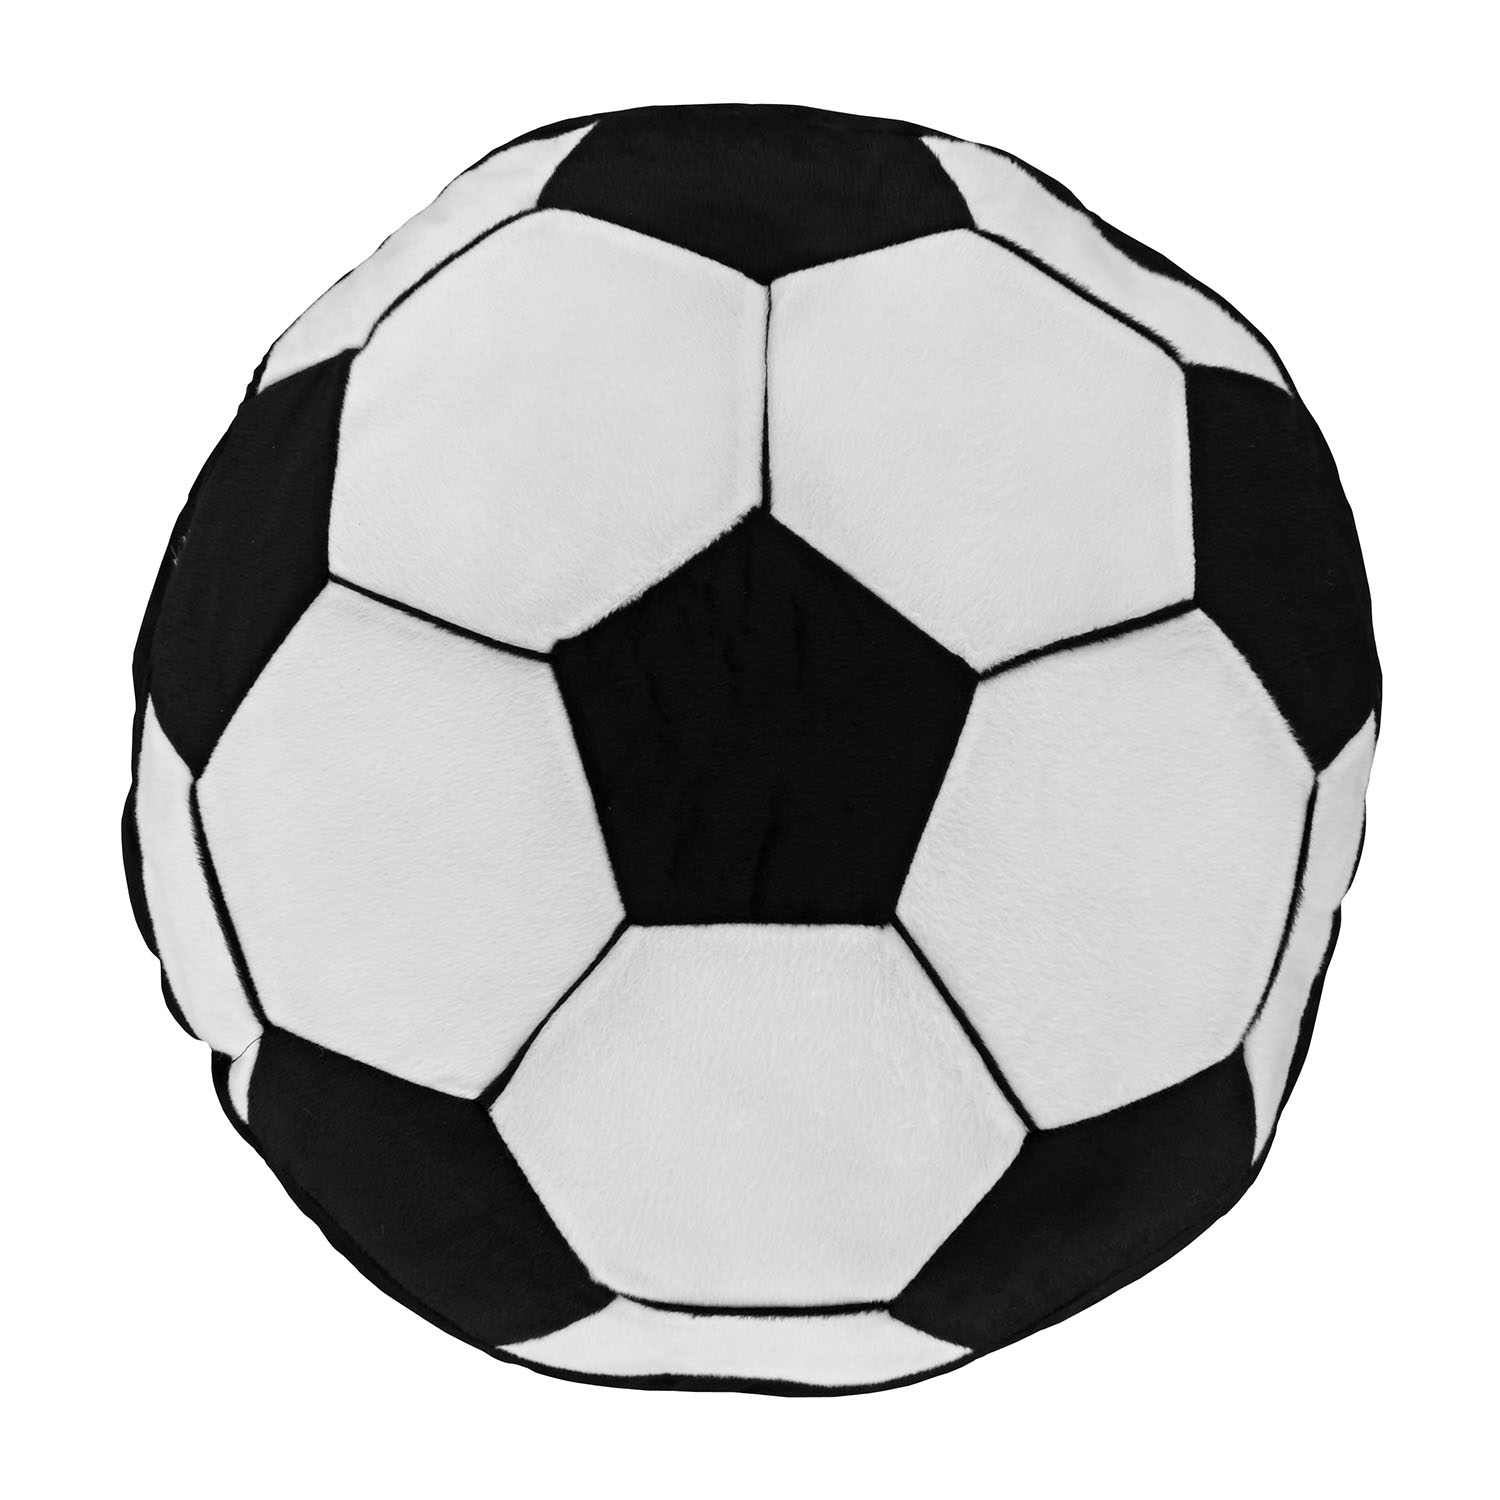 Image of Catherine Lansfield It's A Goal Cushion, 40cm x 40cm, Black